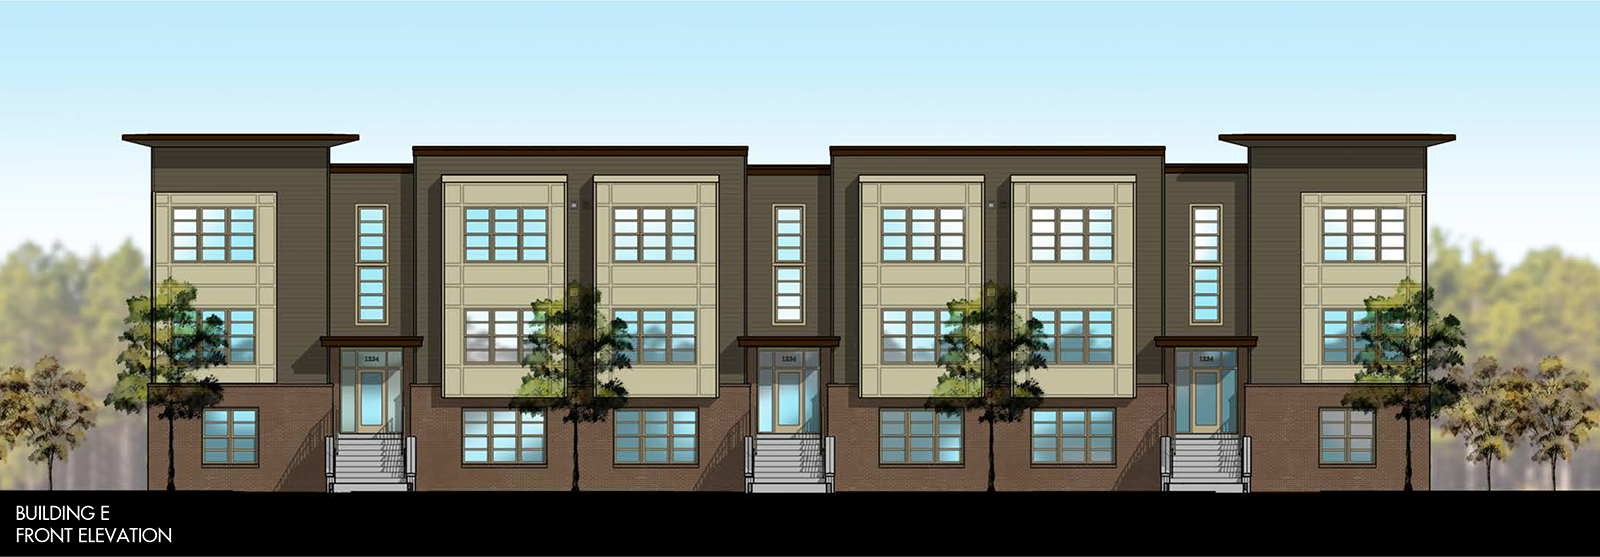 HQ Flats Building E Front Rendering (Graphic: Business Wire)